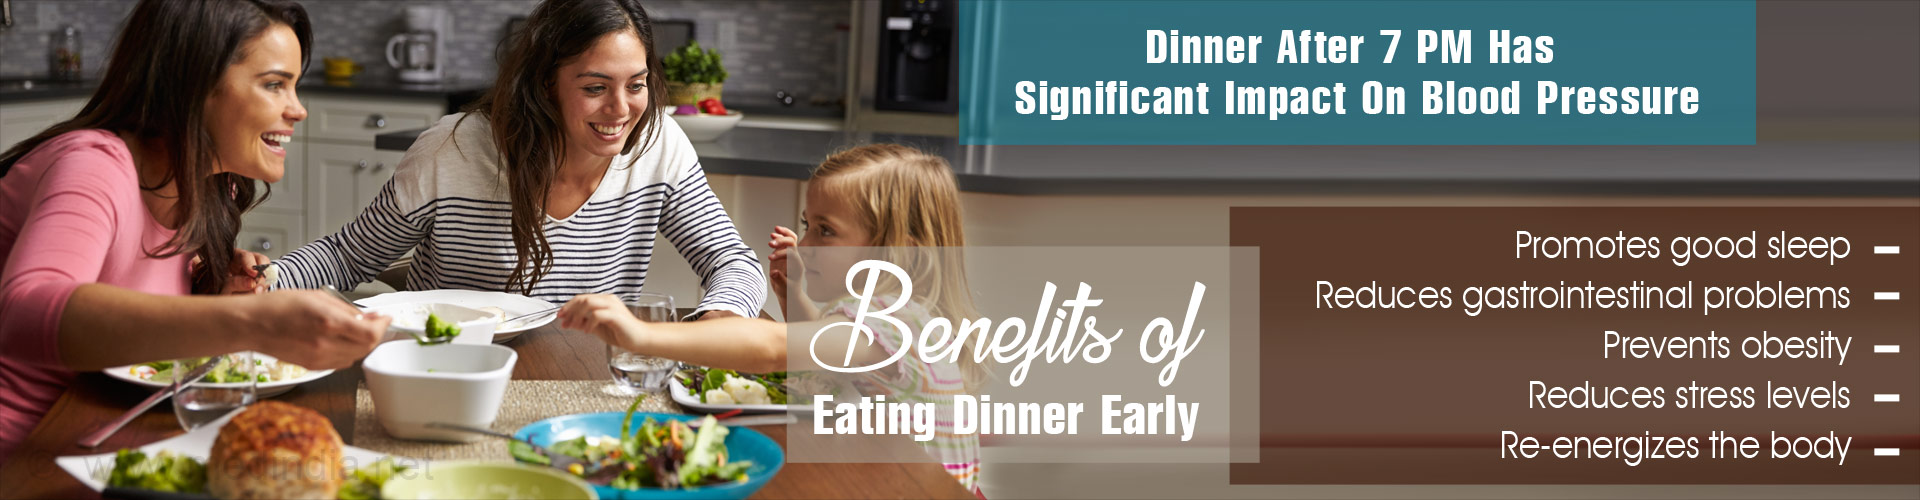 7 Benefits of an Early Dinner